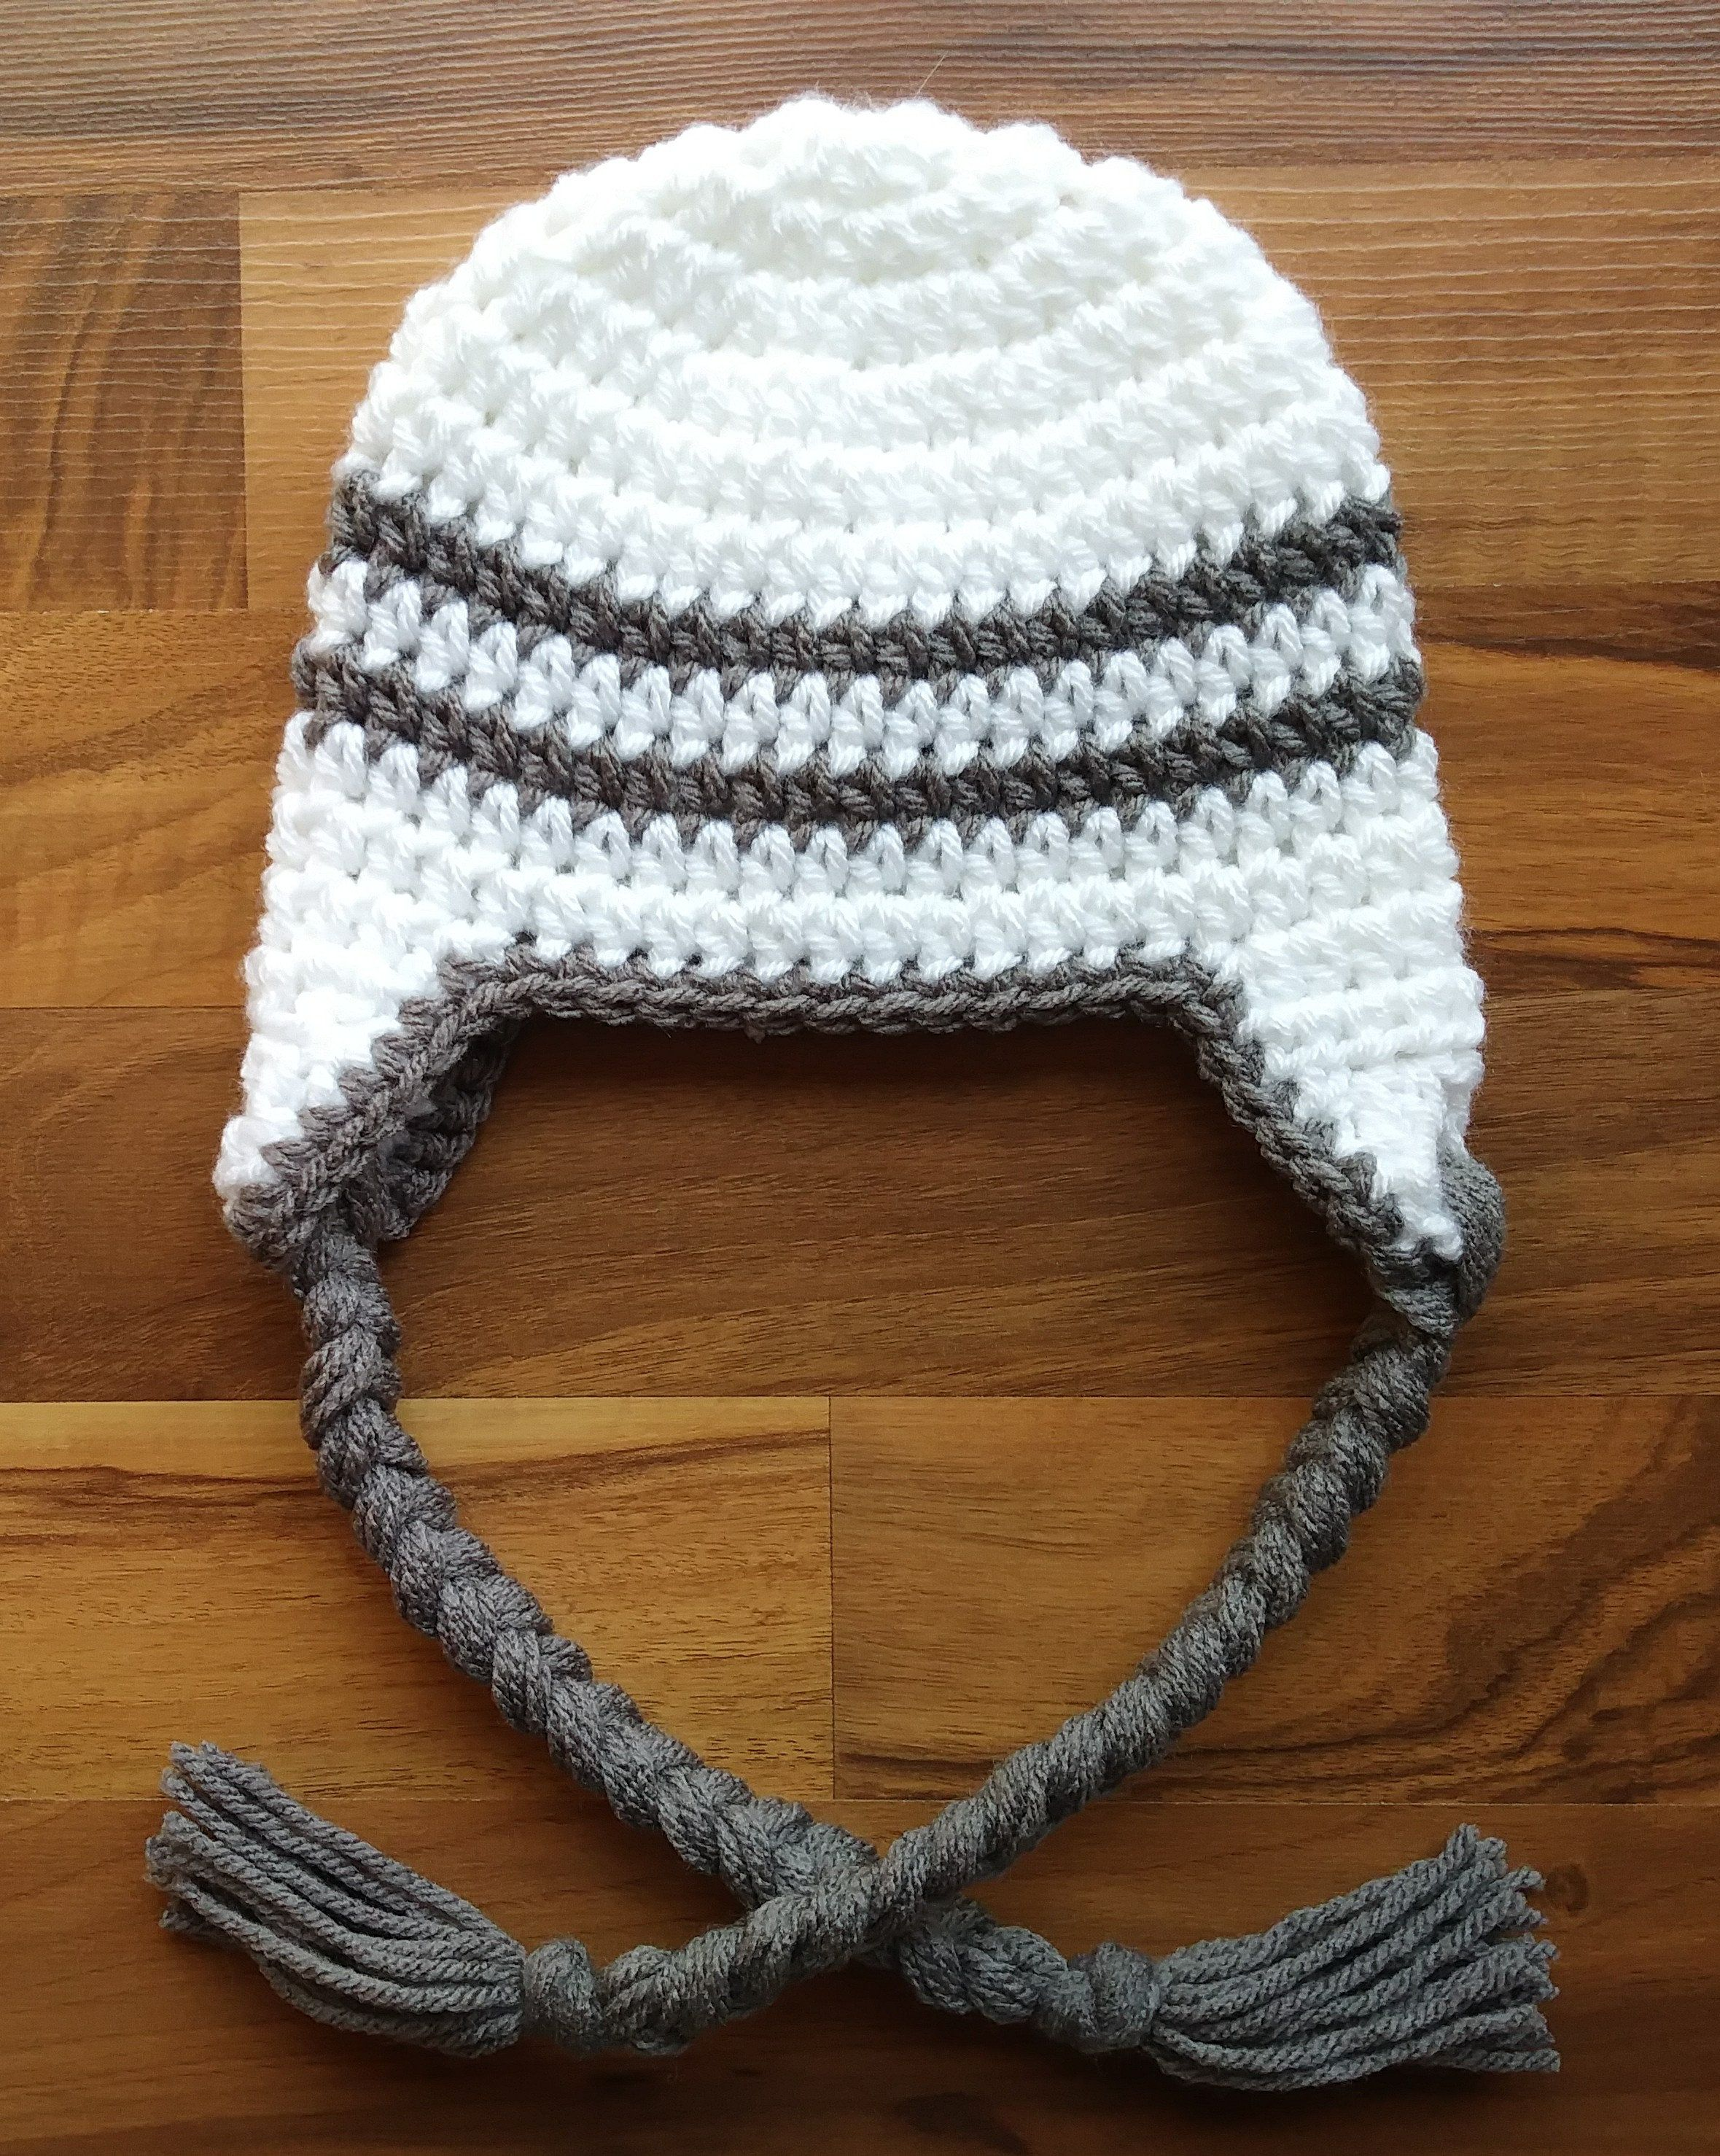 c9e1ab613bb Crocheted Baby Boy Earflap Hat with Braided Ties ~ White with Pewter Gray~  Baby Gift ~ Sizes Newborn to 5T ~ MADE TO ORDER by KaraAndMollysKids on Etsy